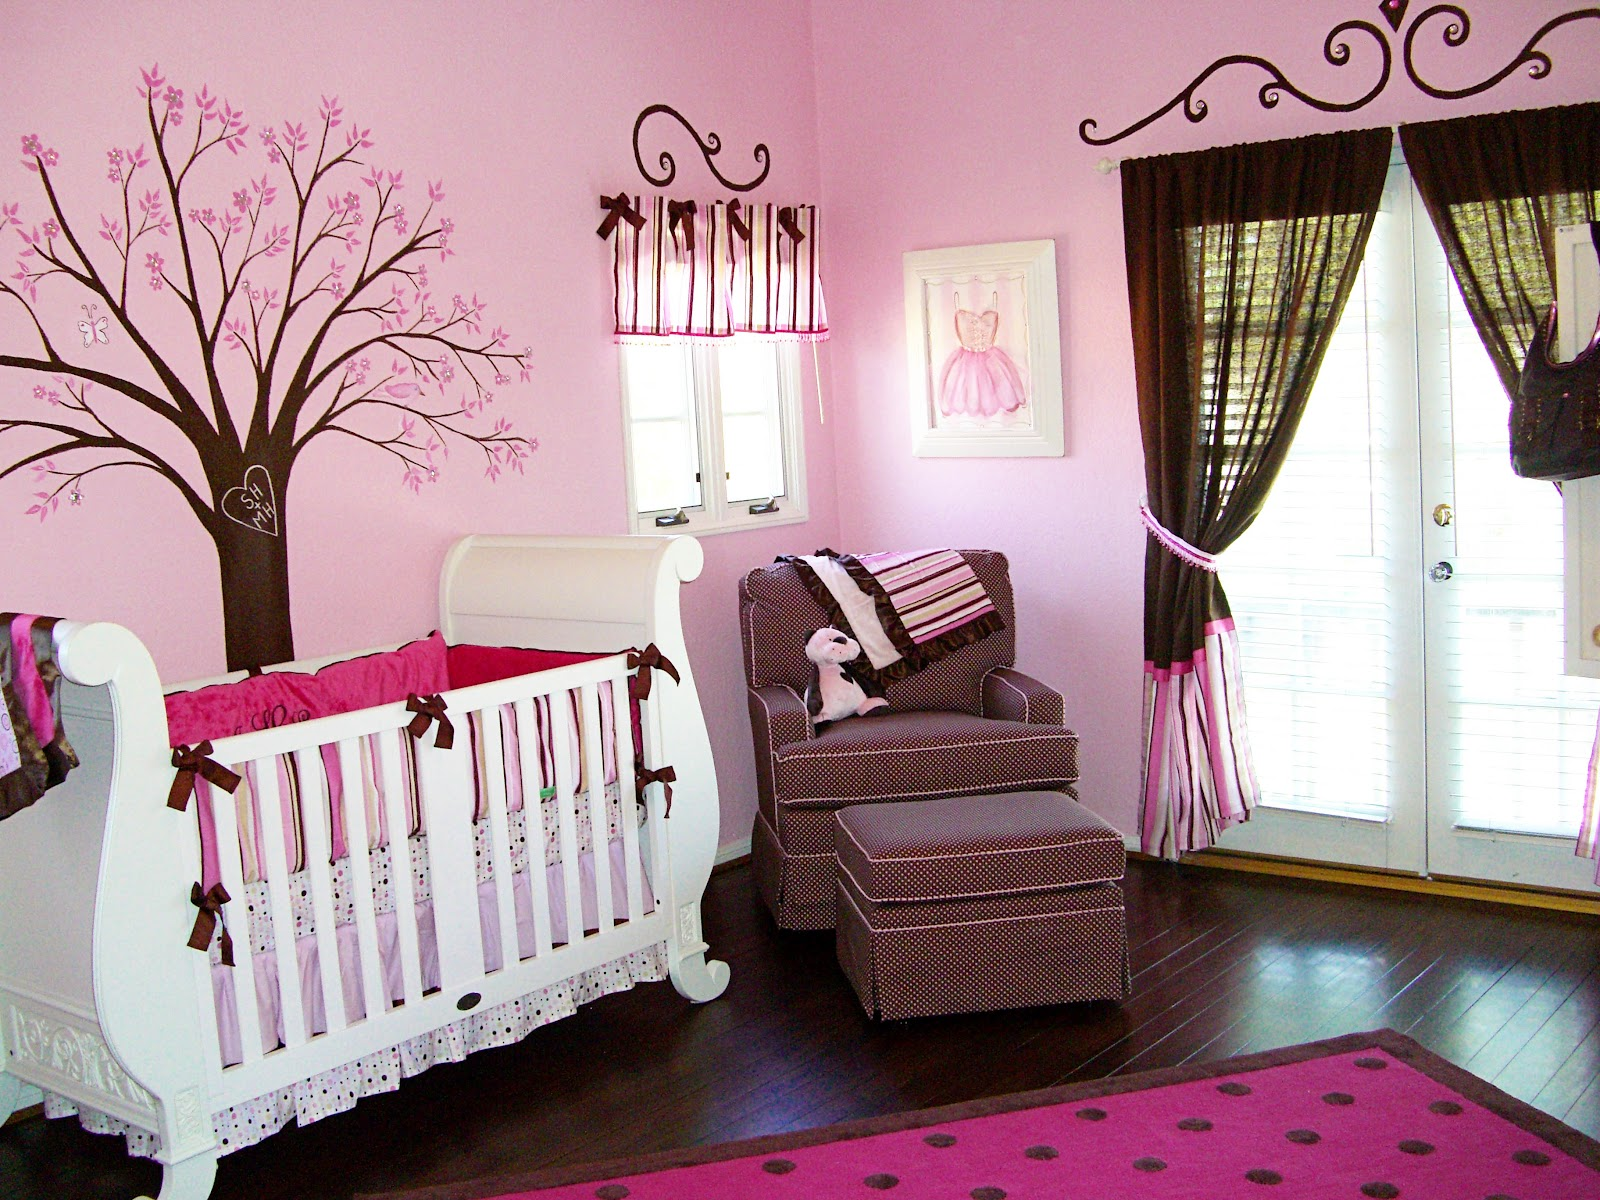 Full pink color girl baby room ideas decorate for Baby room mural ideas